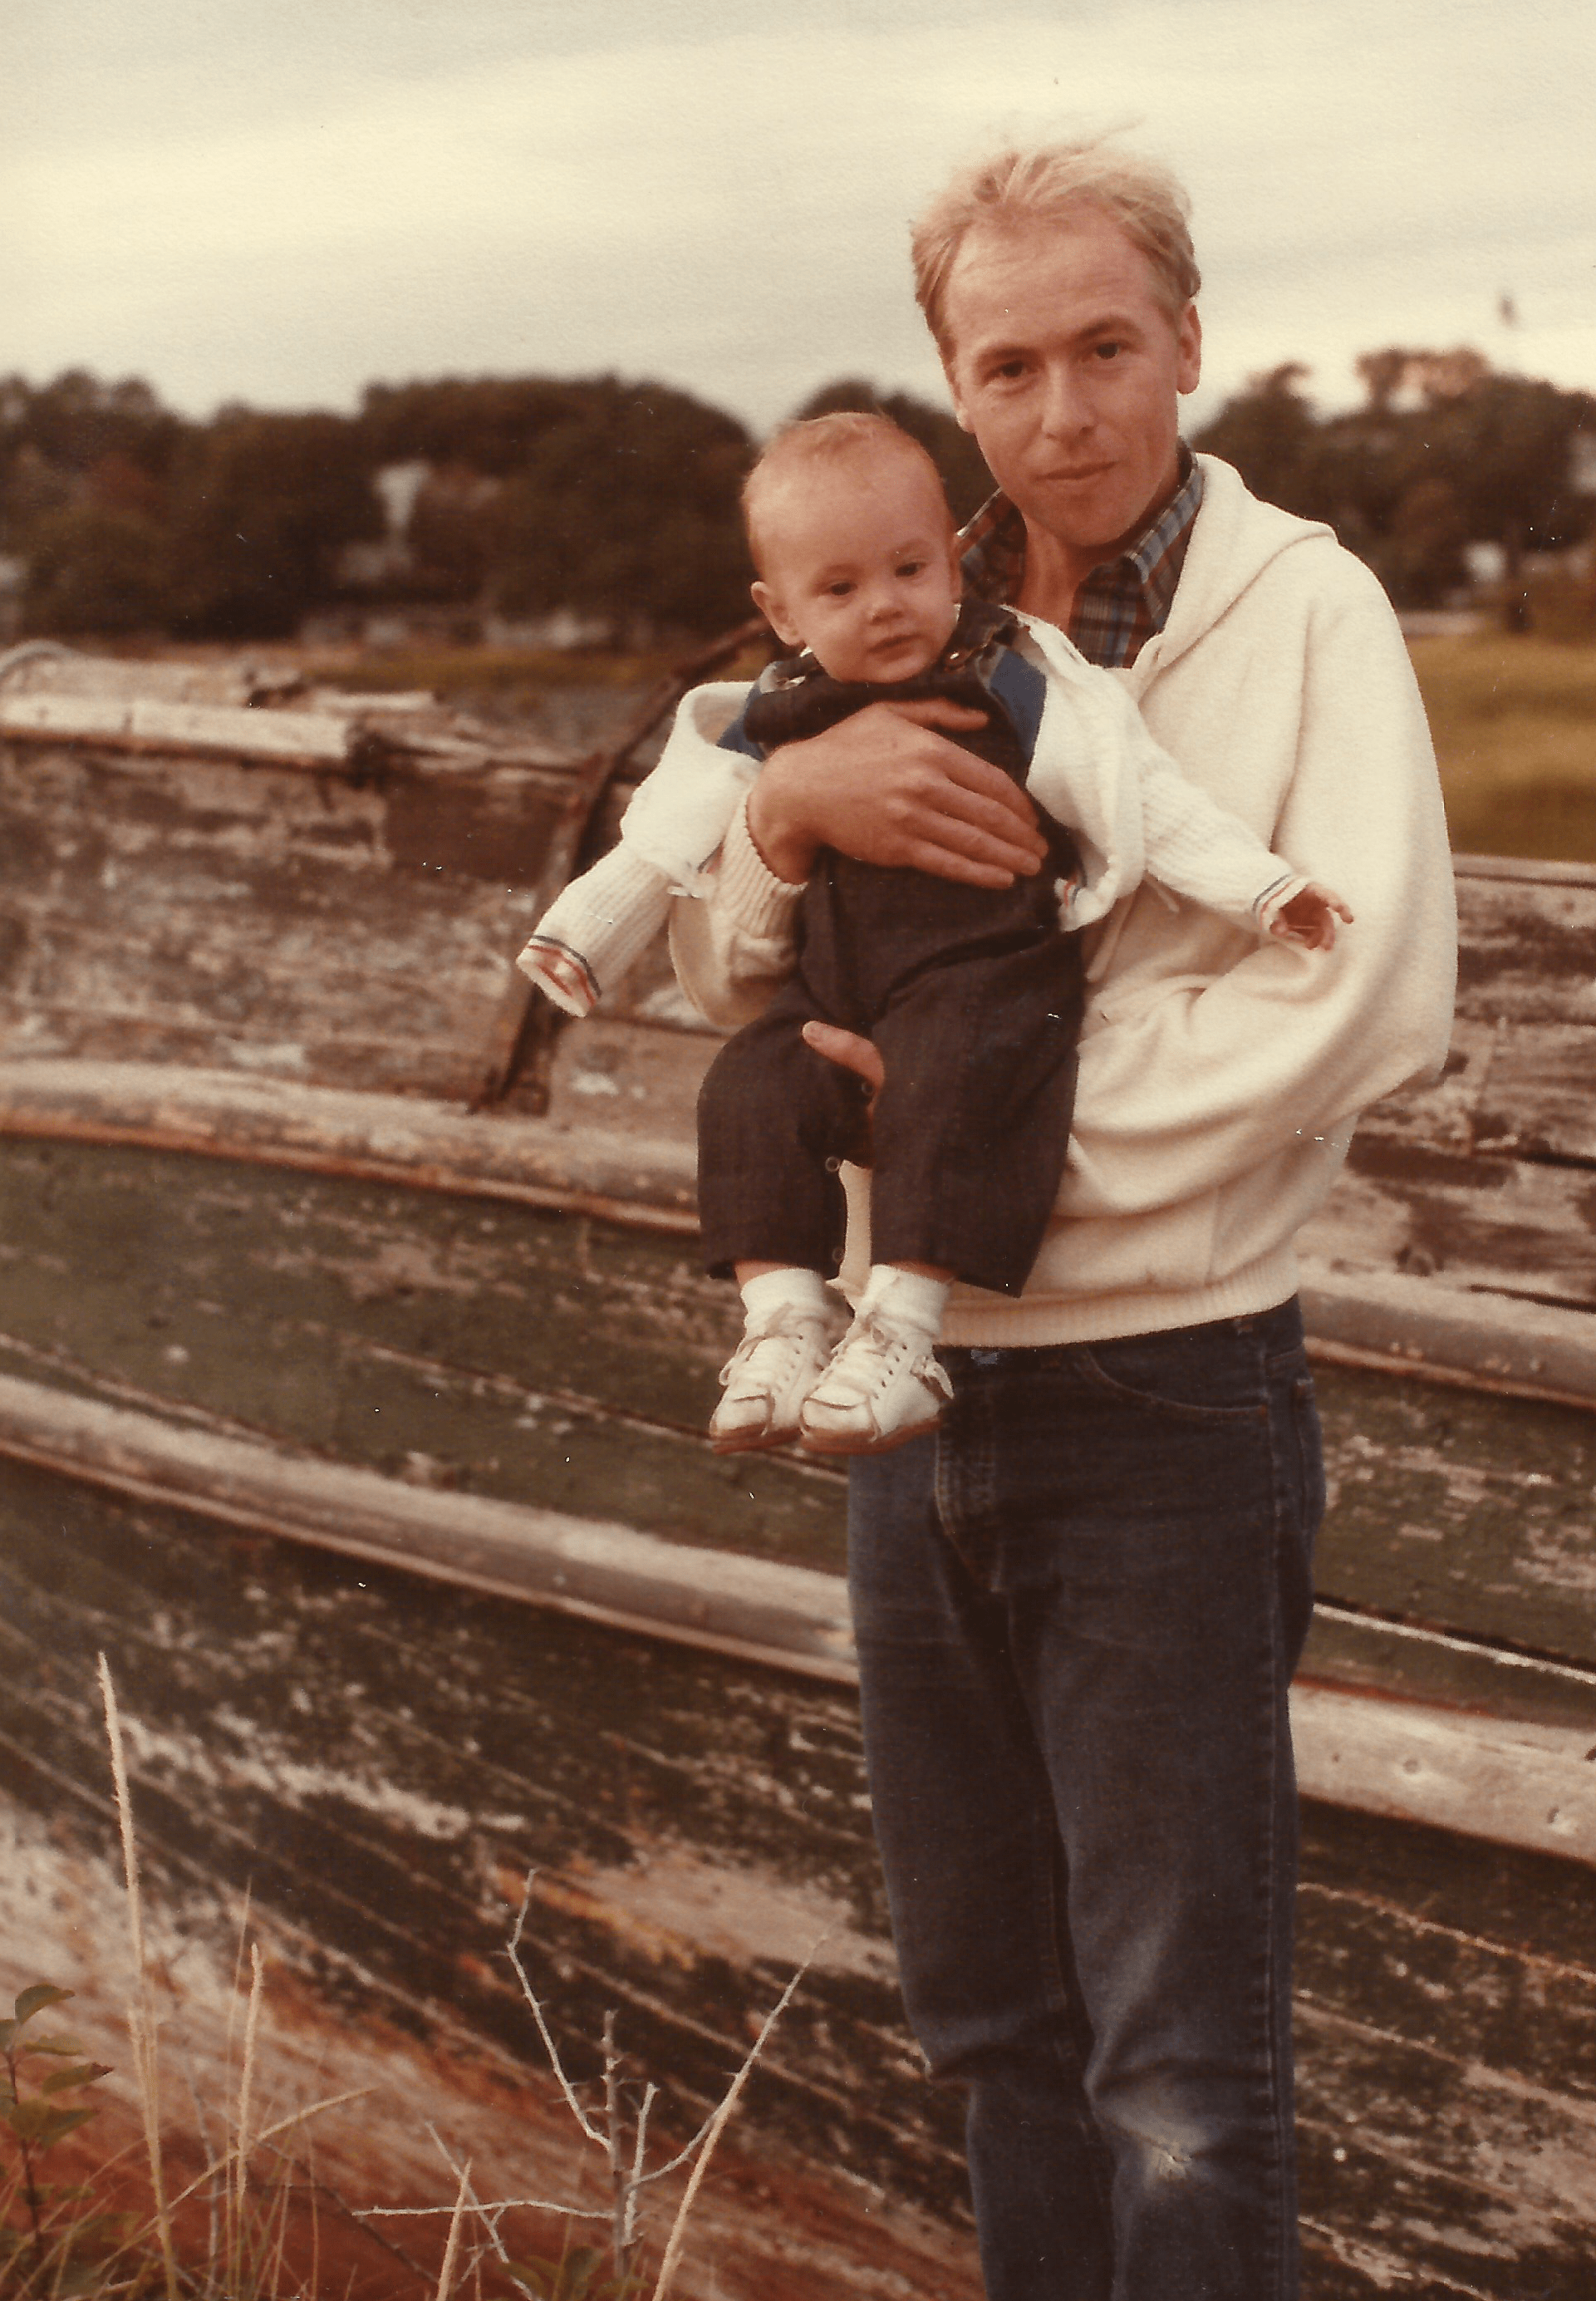 Promotional photo of a young Dennis Dougherty holding his child